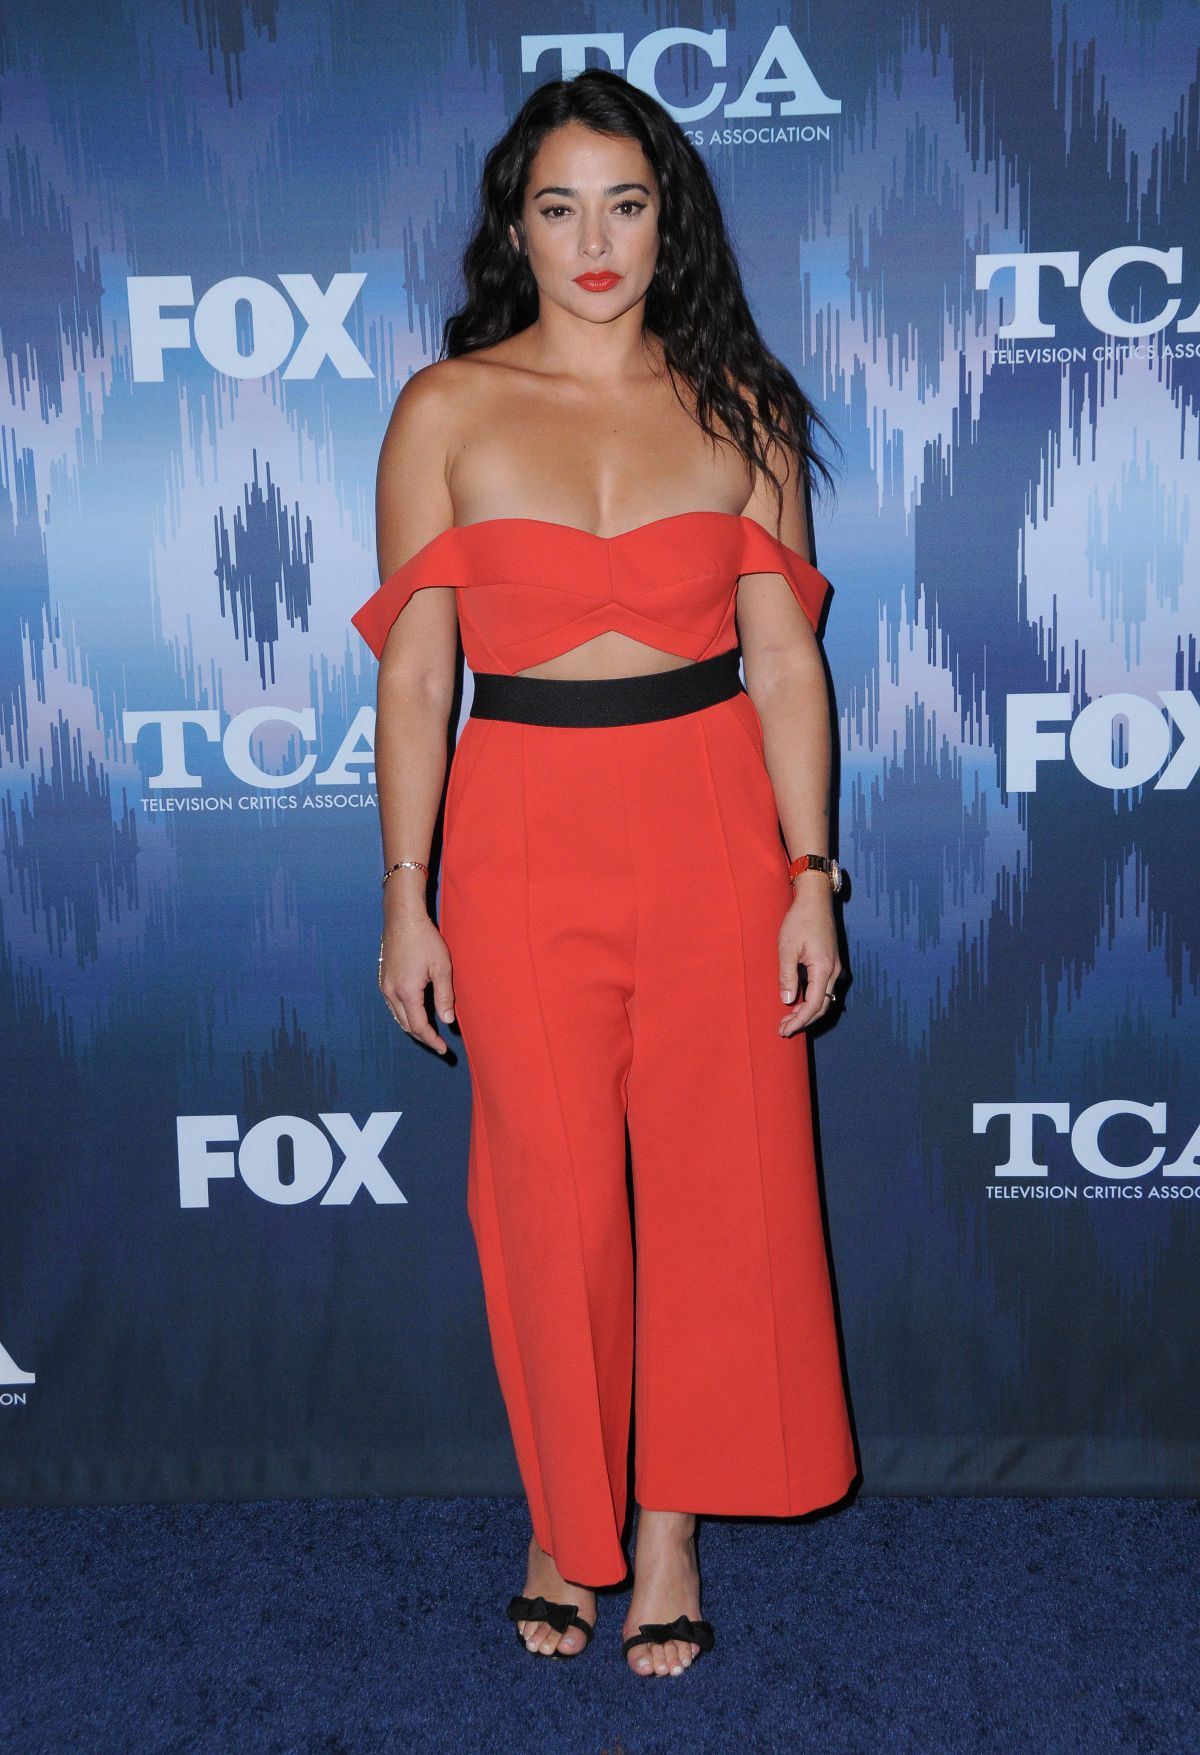 NATALIE MARTINEZ at Fox All-star Party at 2017 Winter TCA Tour in Pasadena 01/11/2017